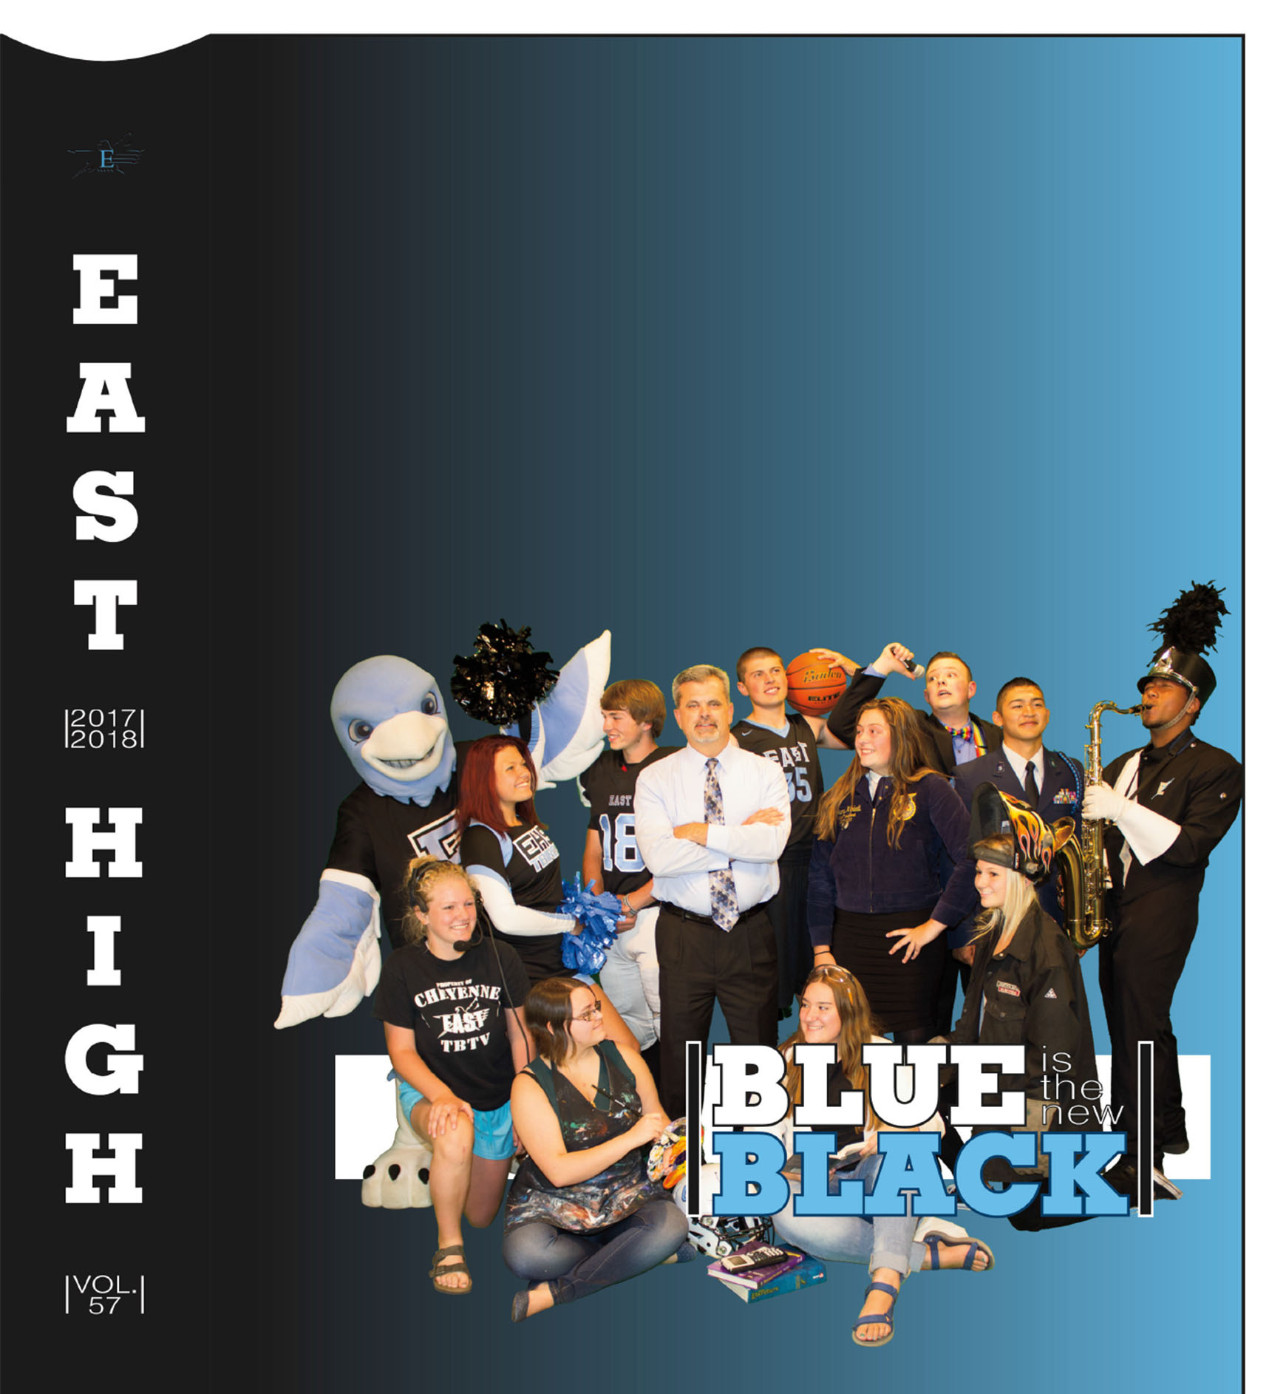 Picture of the cover of the award-winning 2017-18 yearbook cover.